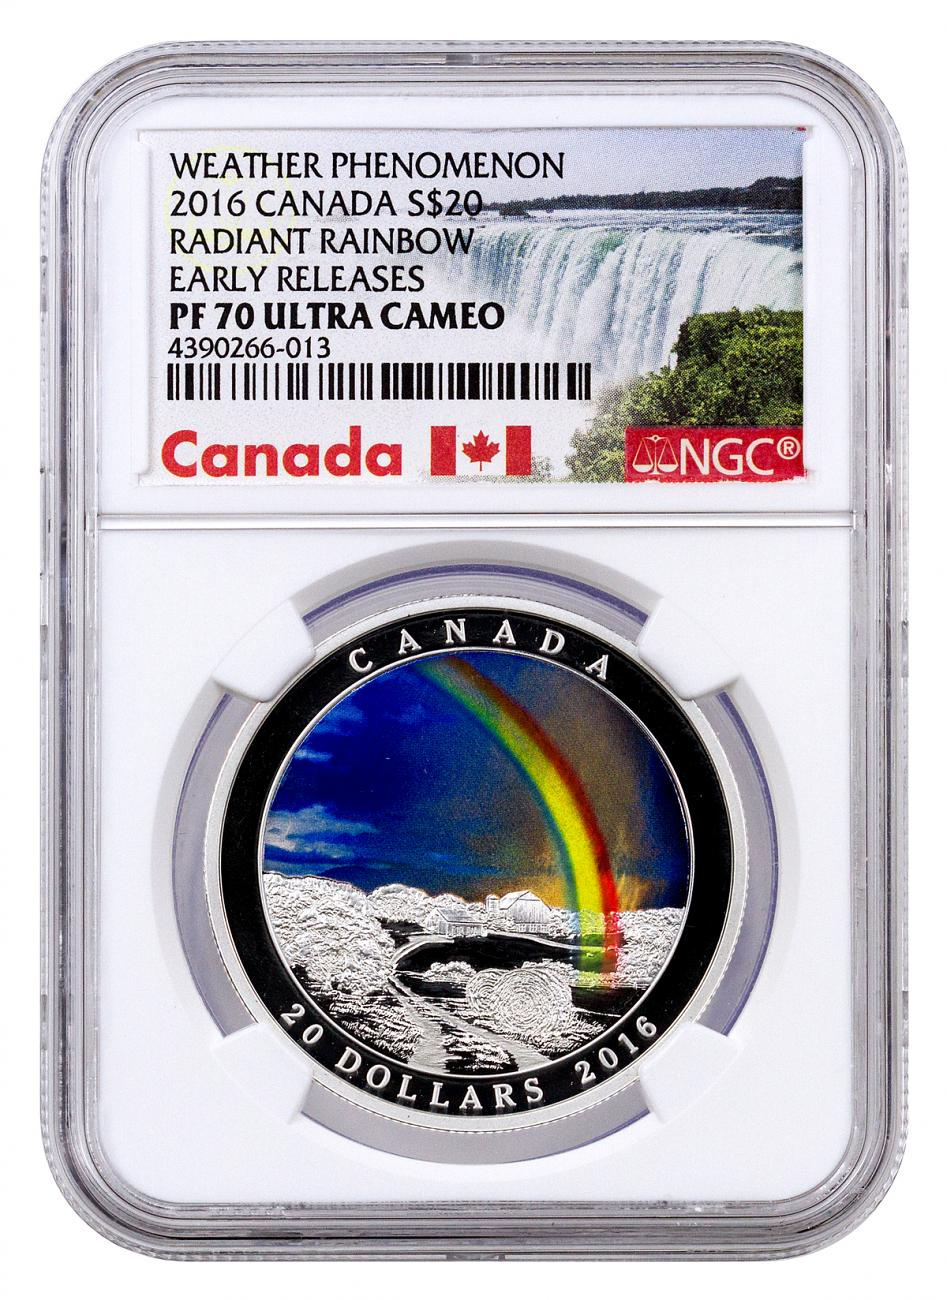 2016 Canada $20 1 oz. Colorized Proof Silver Weather Phenomenon - Radiant Rainbow - NGC PF70 UC Early Releases (Exclusive Canada Label)